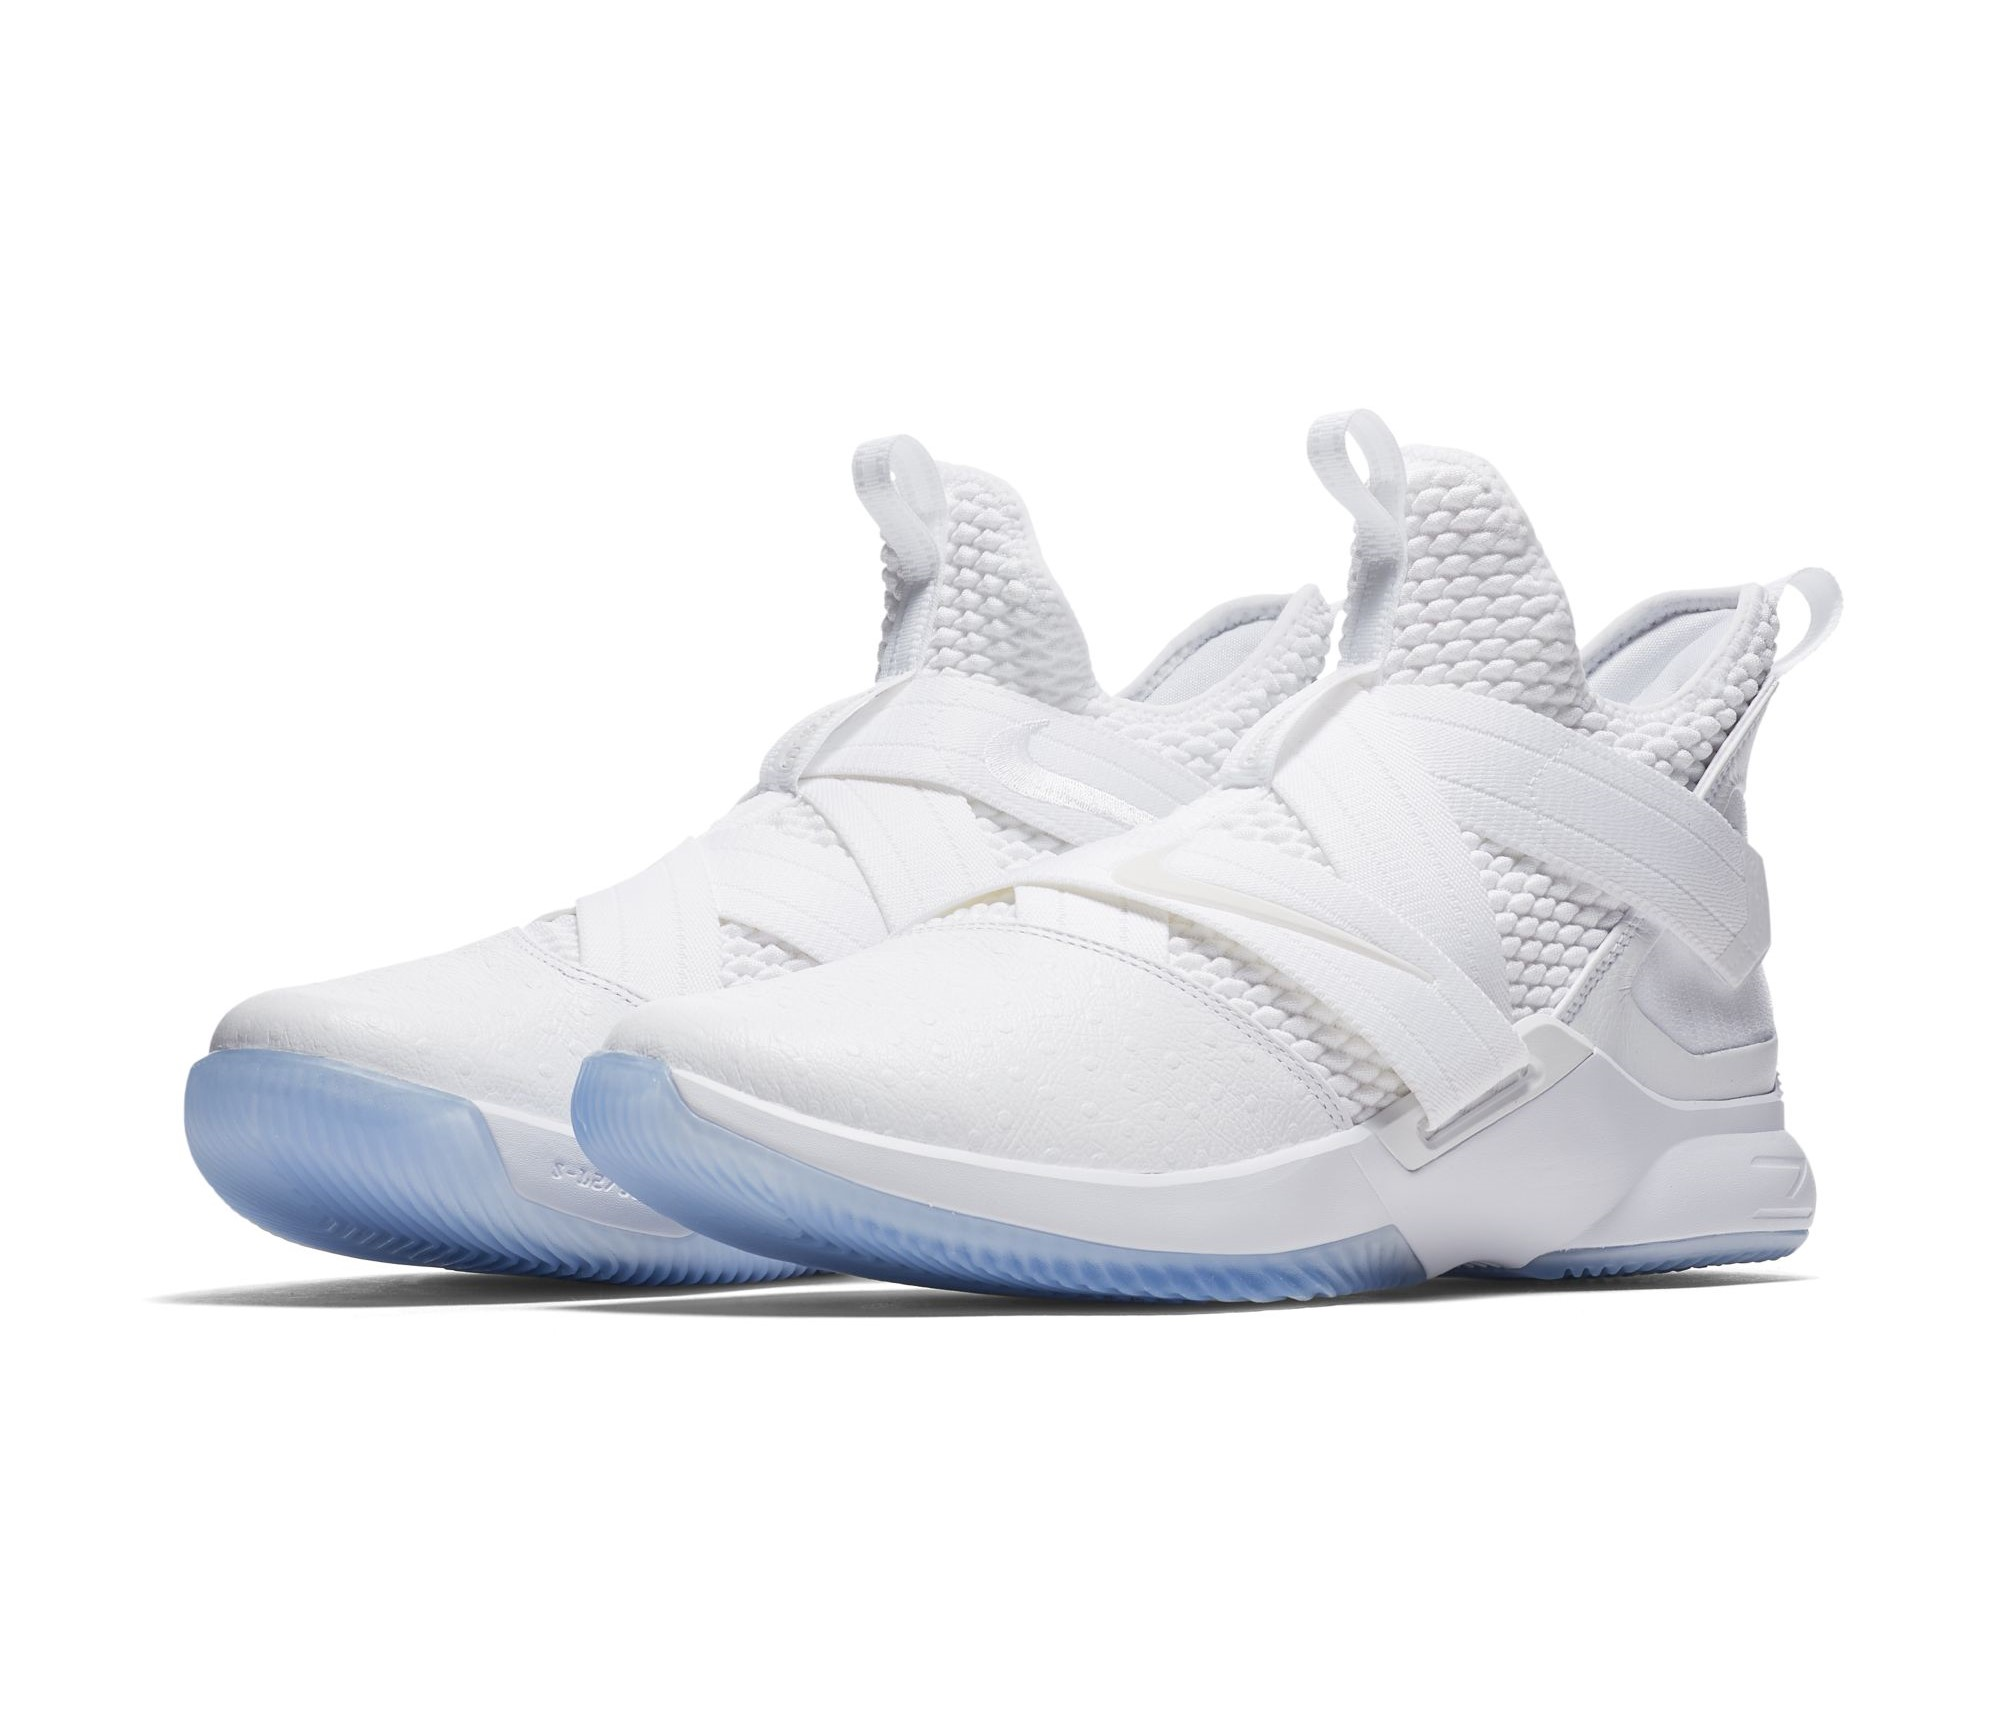 newest 3d8c2 ad21d The Nike LeBron Soldier 12 'Triple White' Releases Next ...